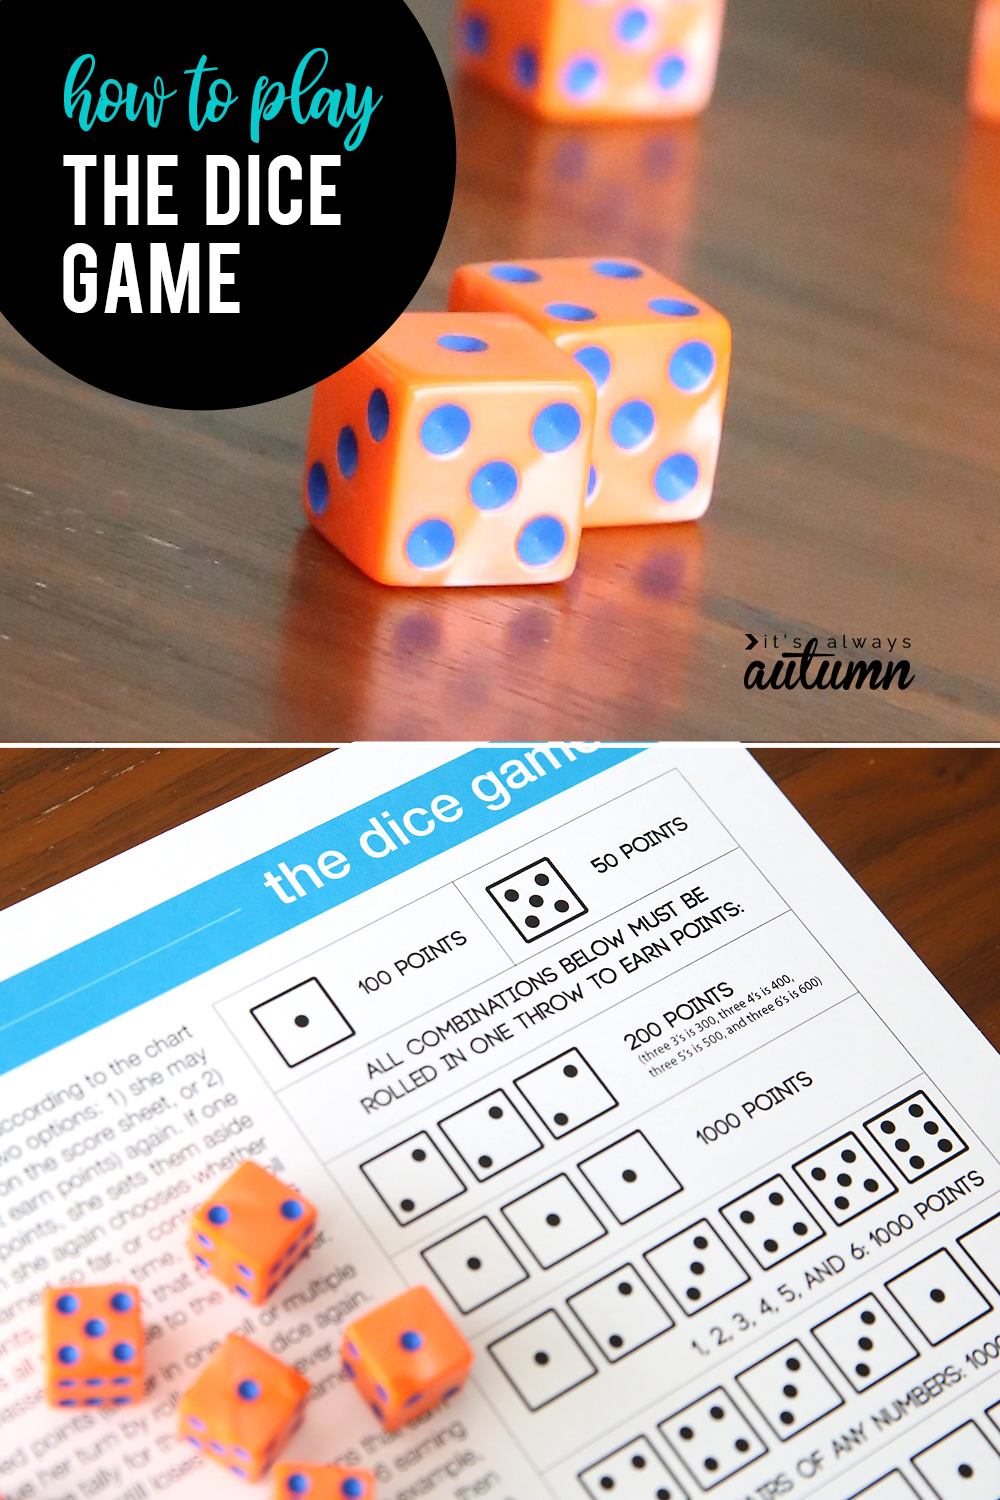 The dice game is easy to learn and fun to play! All you need are 6 dice and a piece of paper to keep score. Great way to keeps kids busy.